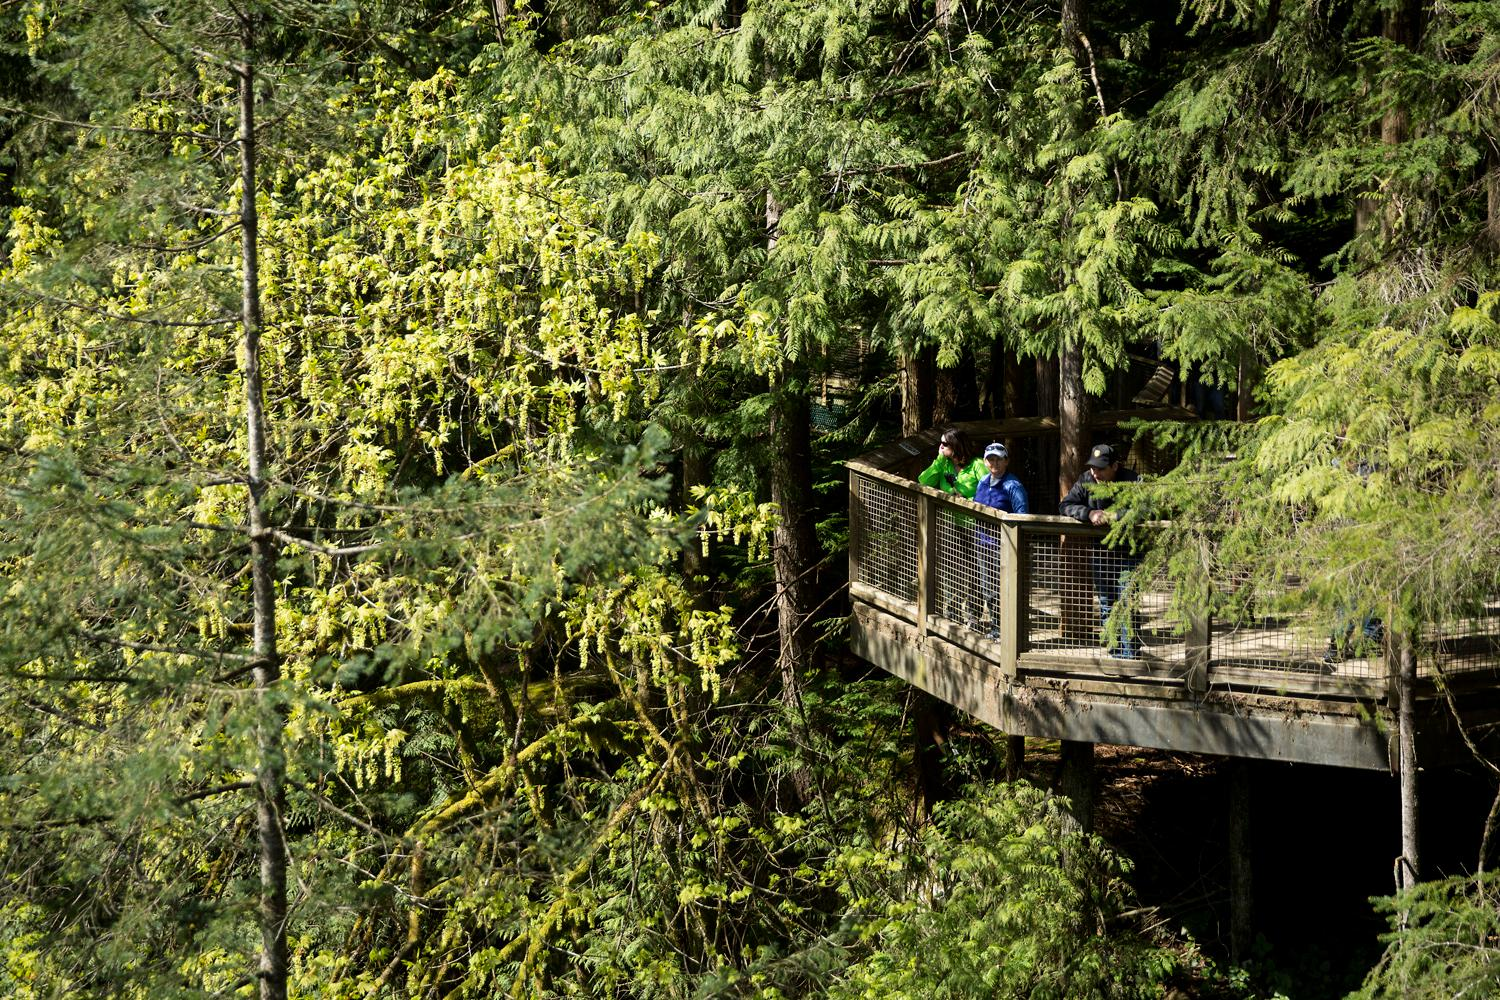 Built in 1889, Capilano Suspension Bridge is Vancouver's oldest attraction. The sturdy bridge hangs 230 feet above Capilano River and is 450 feet long. After crossing, guests can explore a series of seven suspension bridges built high in the trees or cliffwalk, a cliff-side path that takes visitors on a connected series of suspended walkways jutting out from a granite cliff face high above the Capilano River. During summer weekends, Raptors Ridge Birds of Prey bring their rehabilitated hawks, falcons, and owls for visitors to learn more about the surrounding wildlife. (Sy Bean / Seattle Refined)